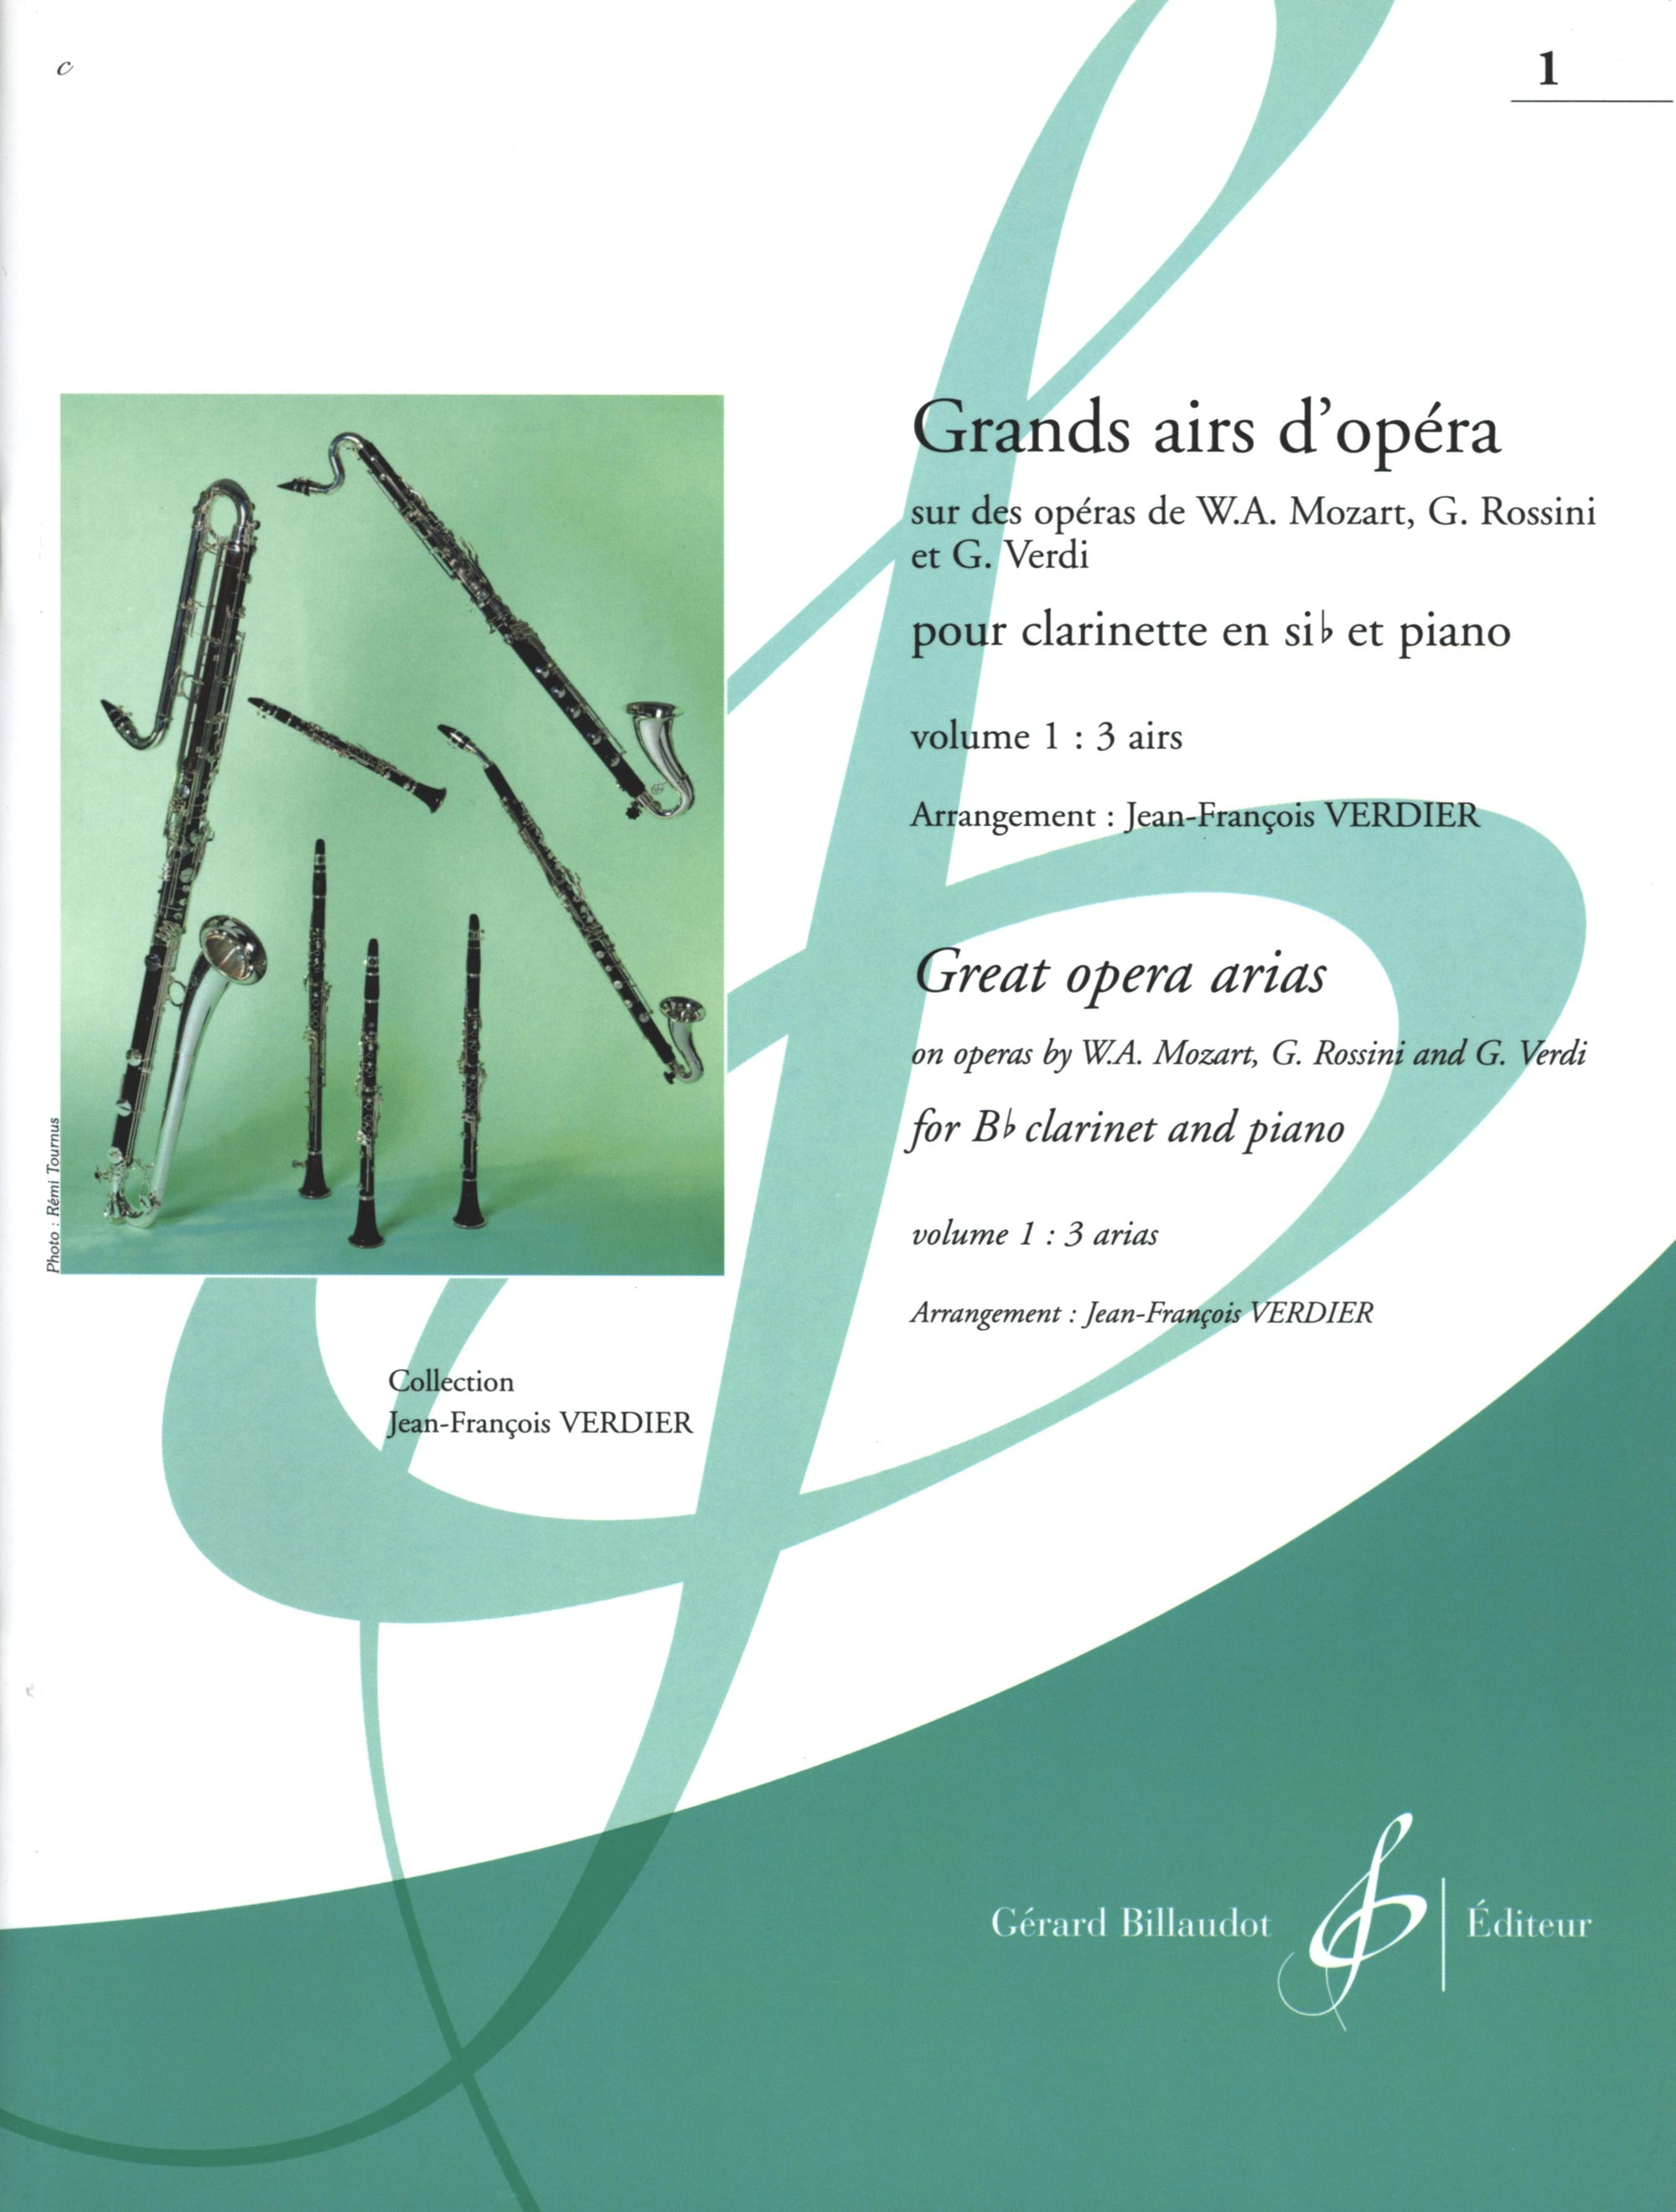 Great Opera Arias for Clarinet - Volume 1